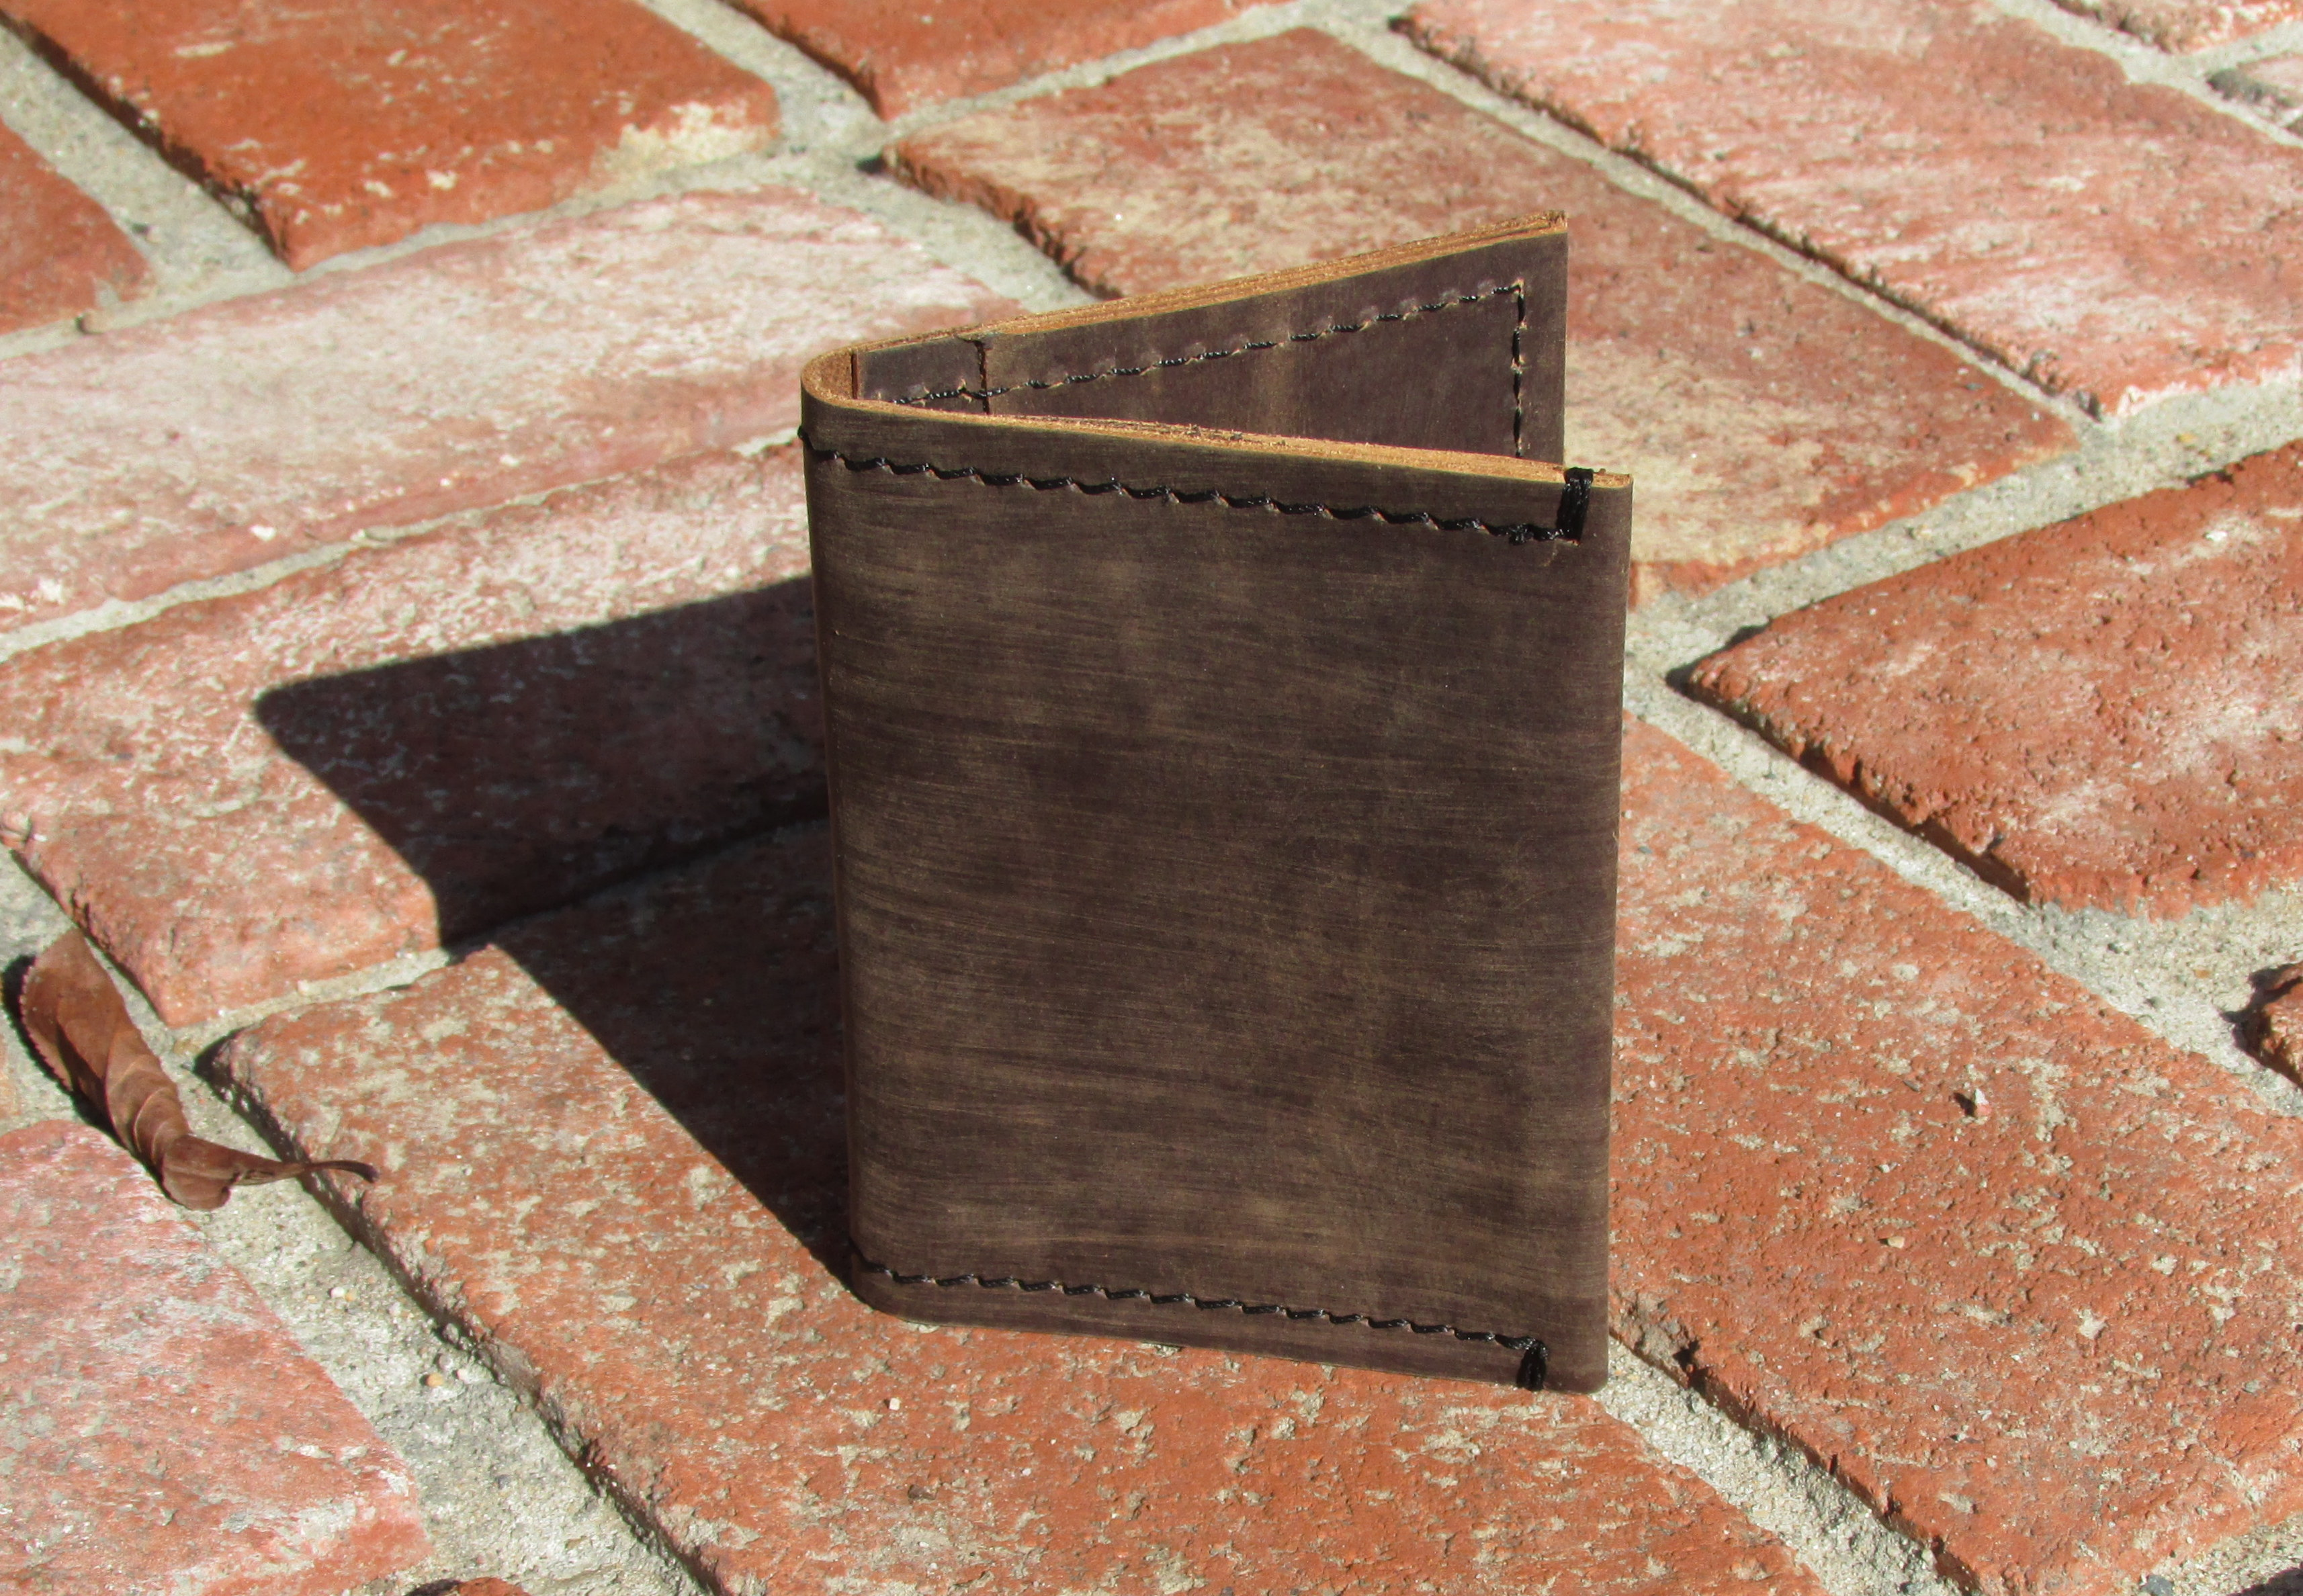 e0d72fa193 Mens Leather Wallet, Leather Card Holder, Card wallet, Men Bifold wallet,  Slim wallet, Genuine Leather, Real Leather, Distressed Leather